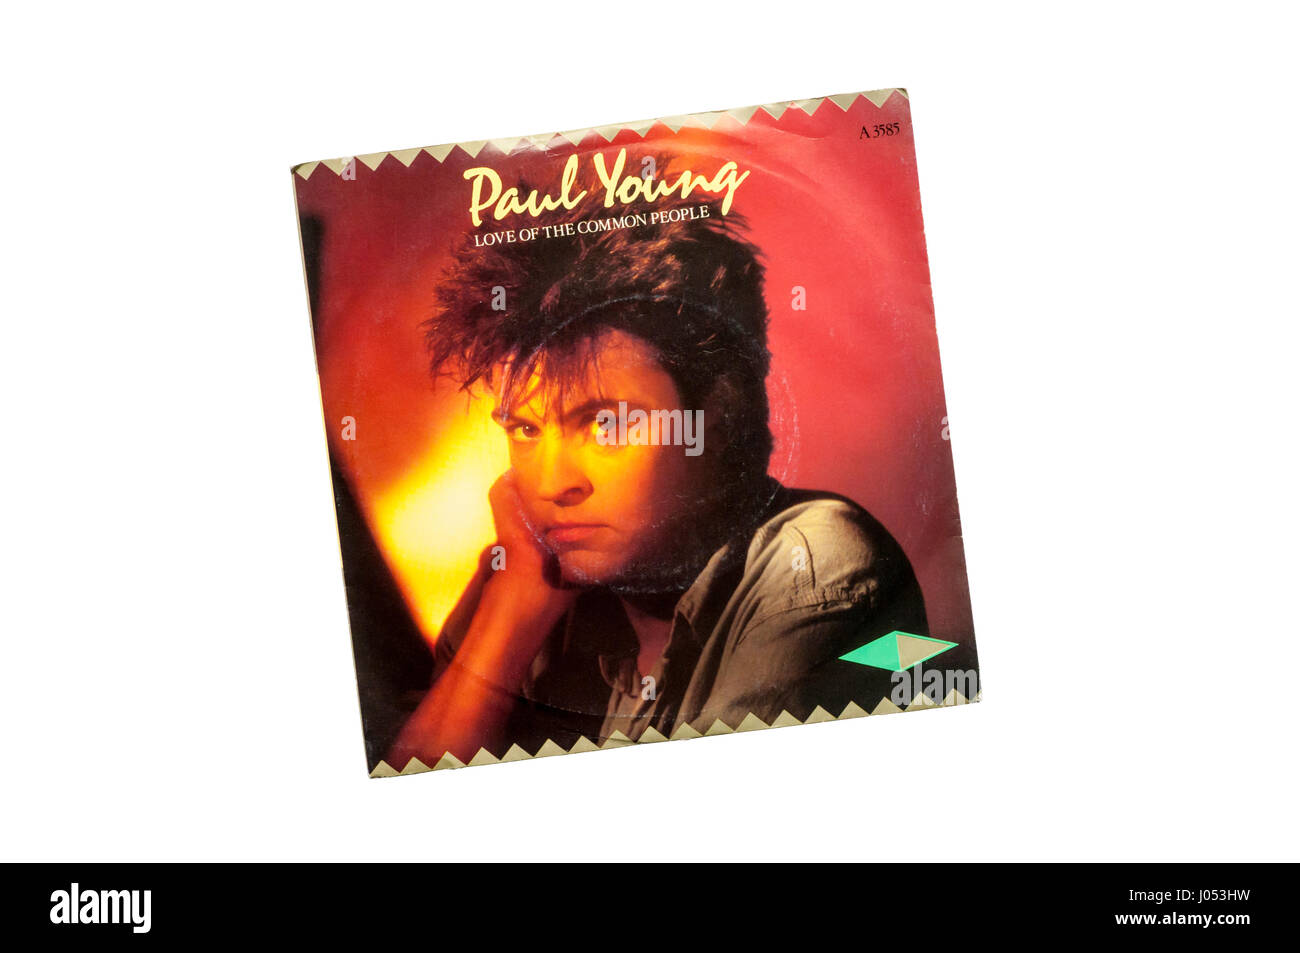 1982 7' single, Love of the Common People by Paul Young. - Stock Image